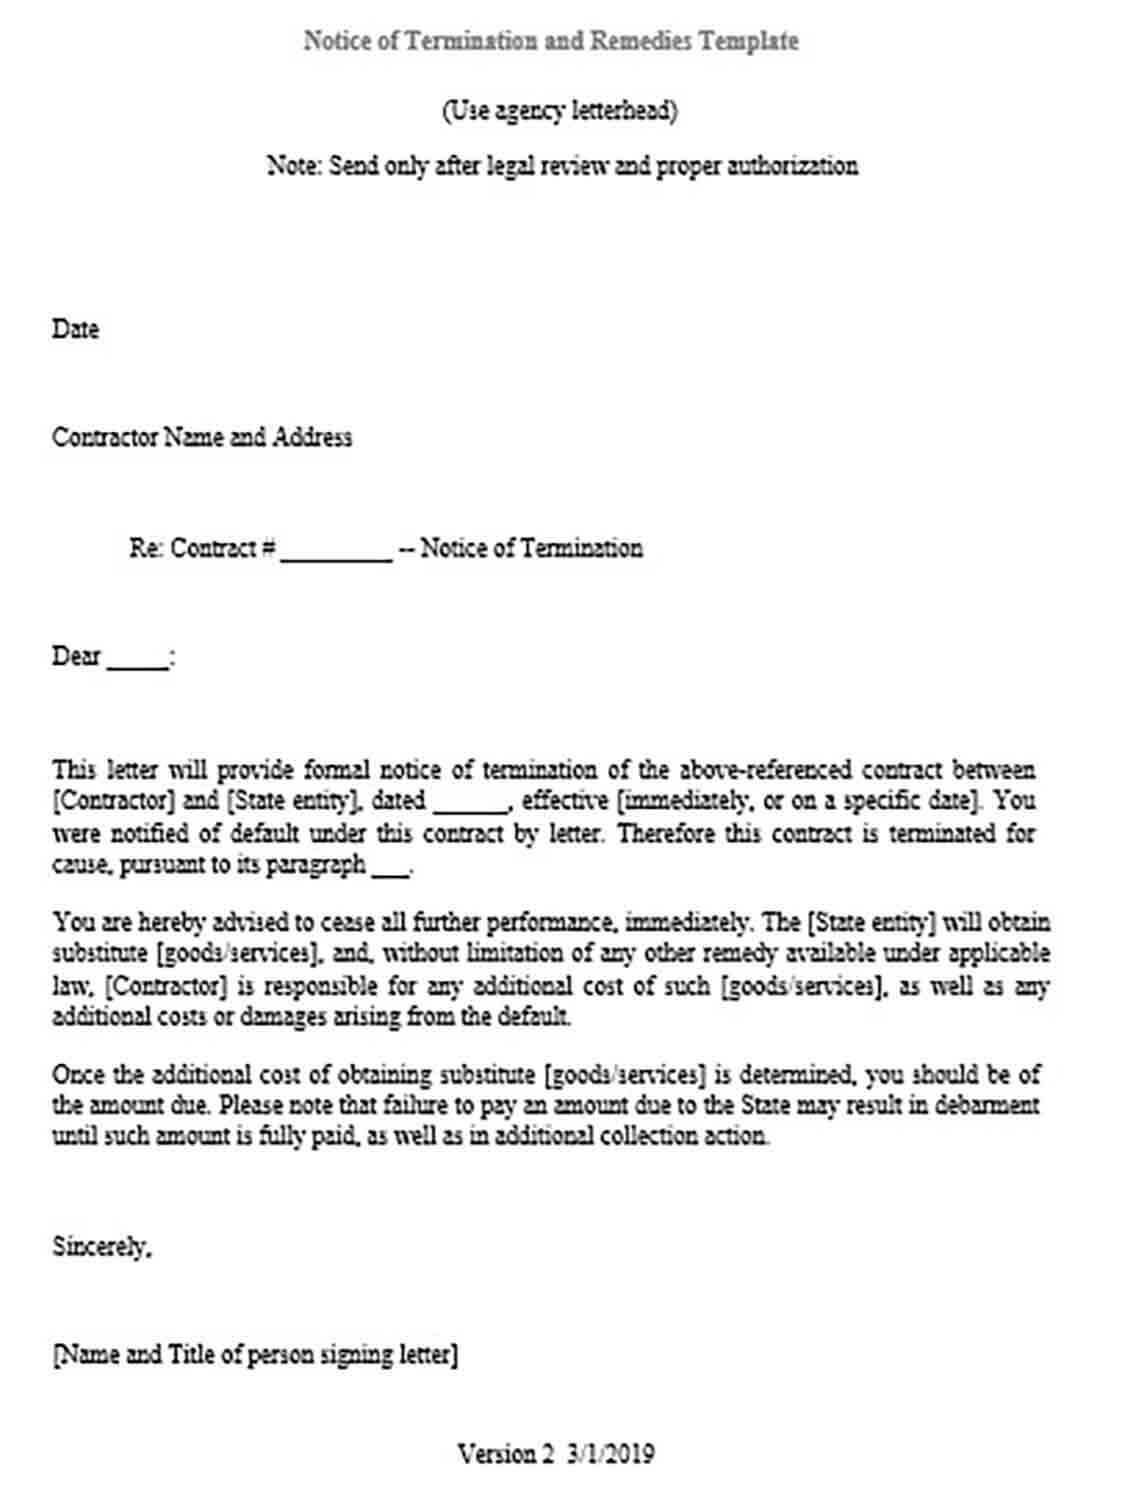 Notice of Termination and Remedies Form